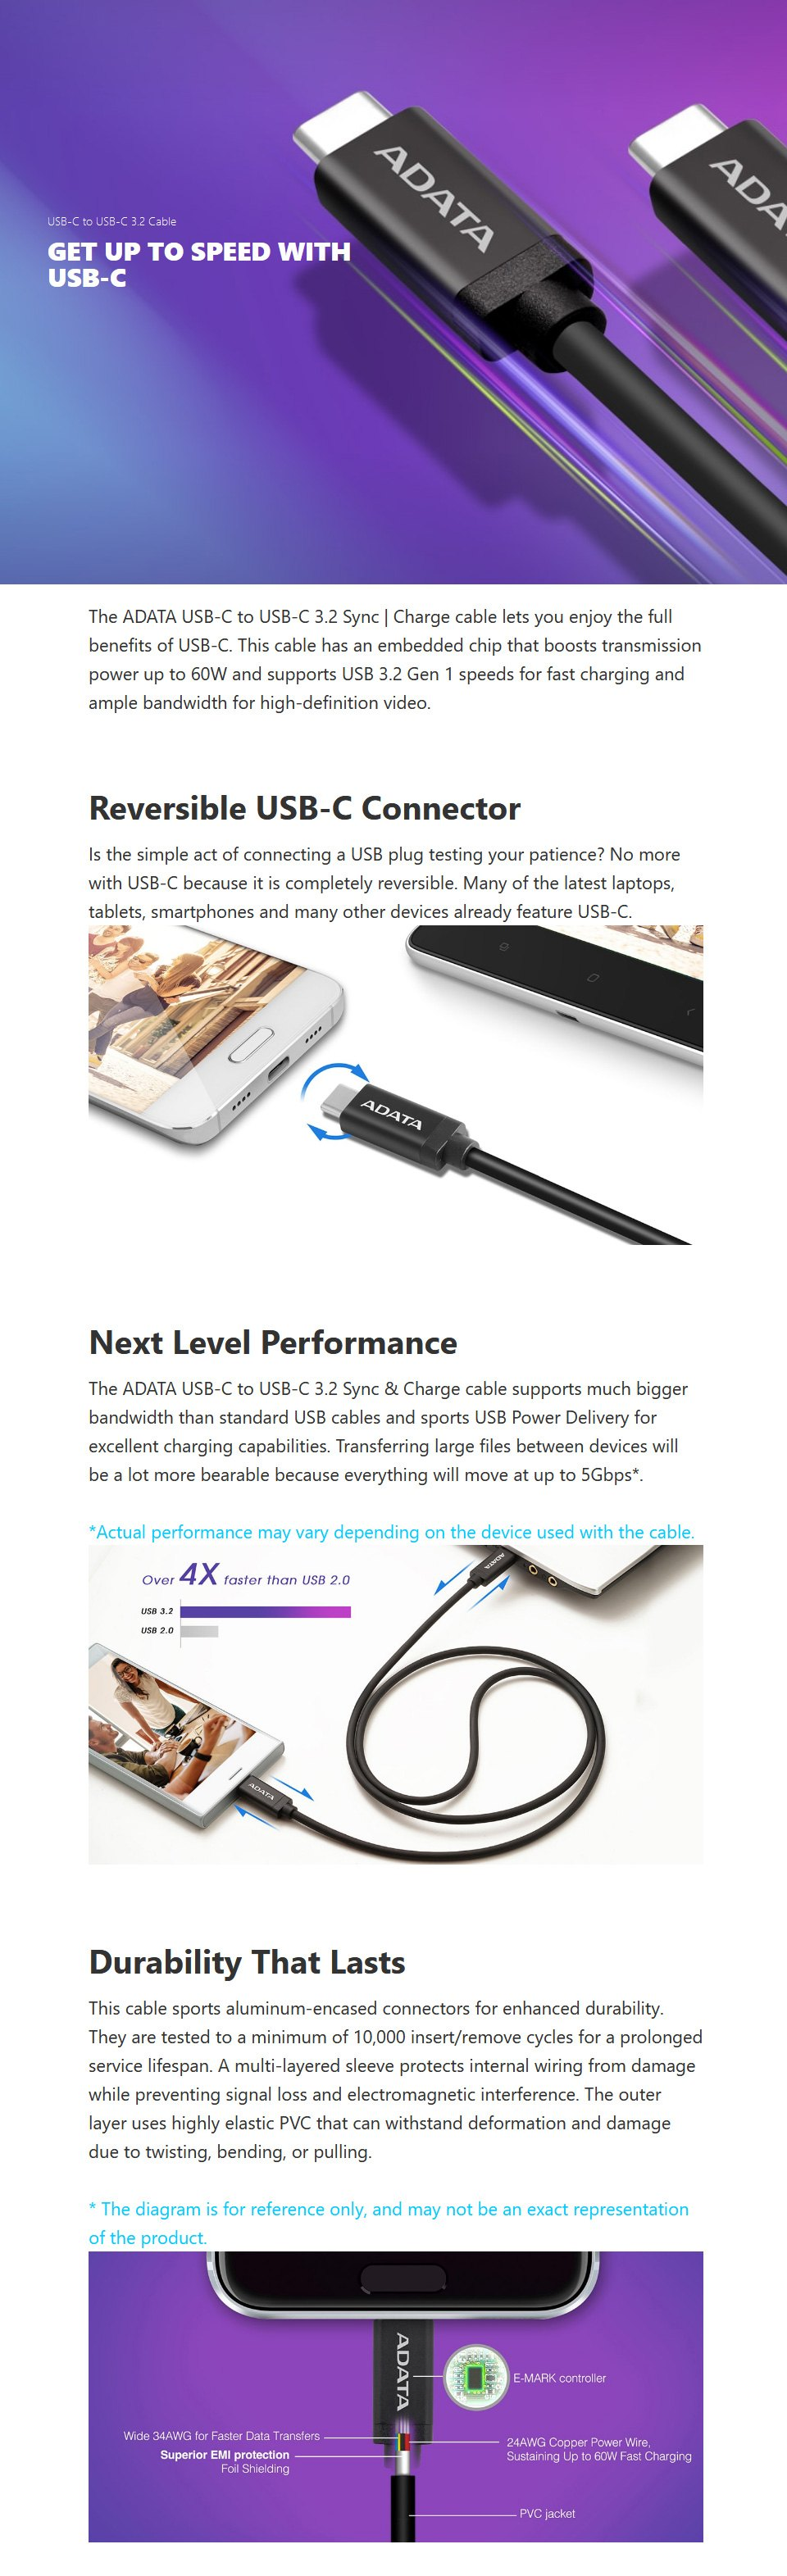 ADATA USB-C to USB-C 3.1 Cable 1m Black features